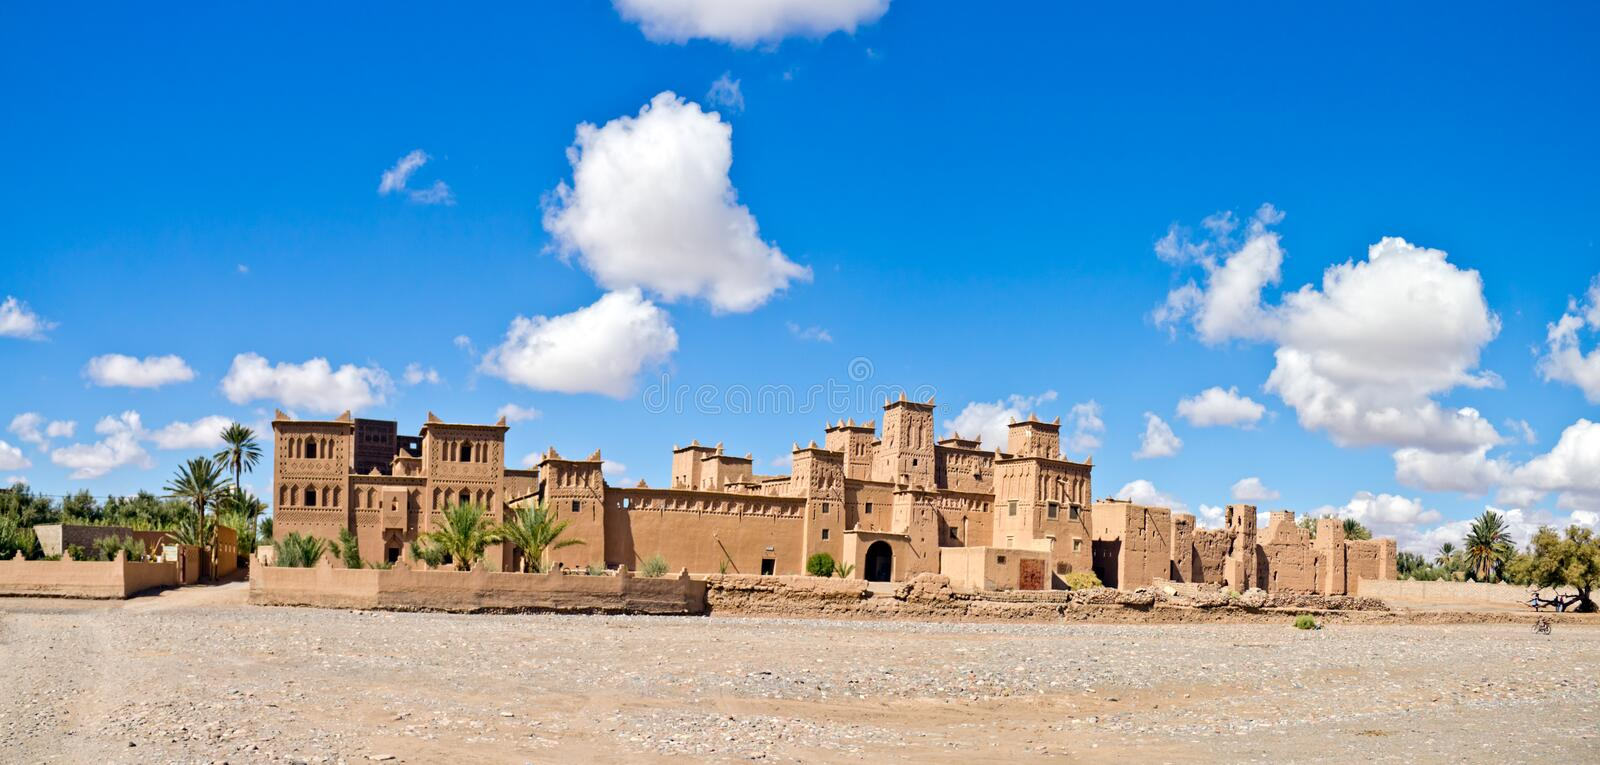 Kasbah in Ouarzazate. Fortified Mud Houses in the Kasbah, Ouarzazate, Morocco. Souss-Massa-Draâ region stock images